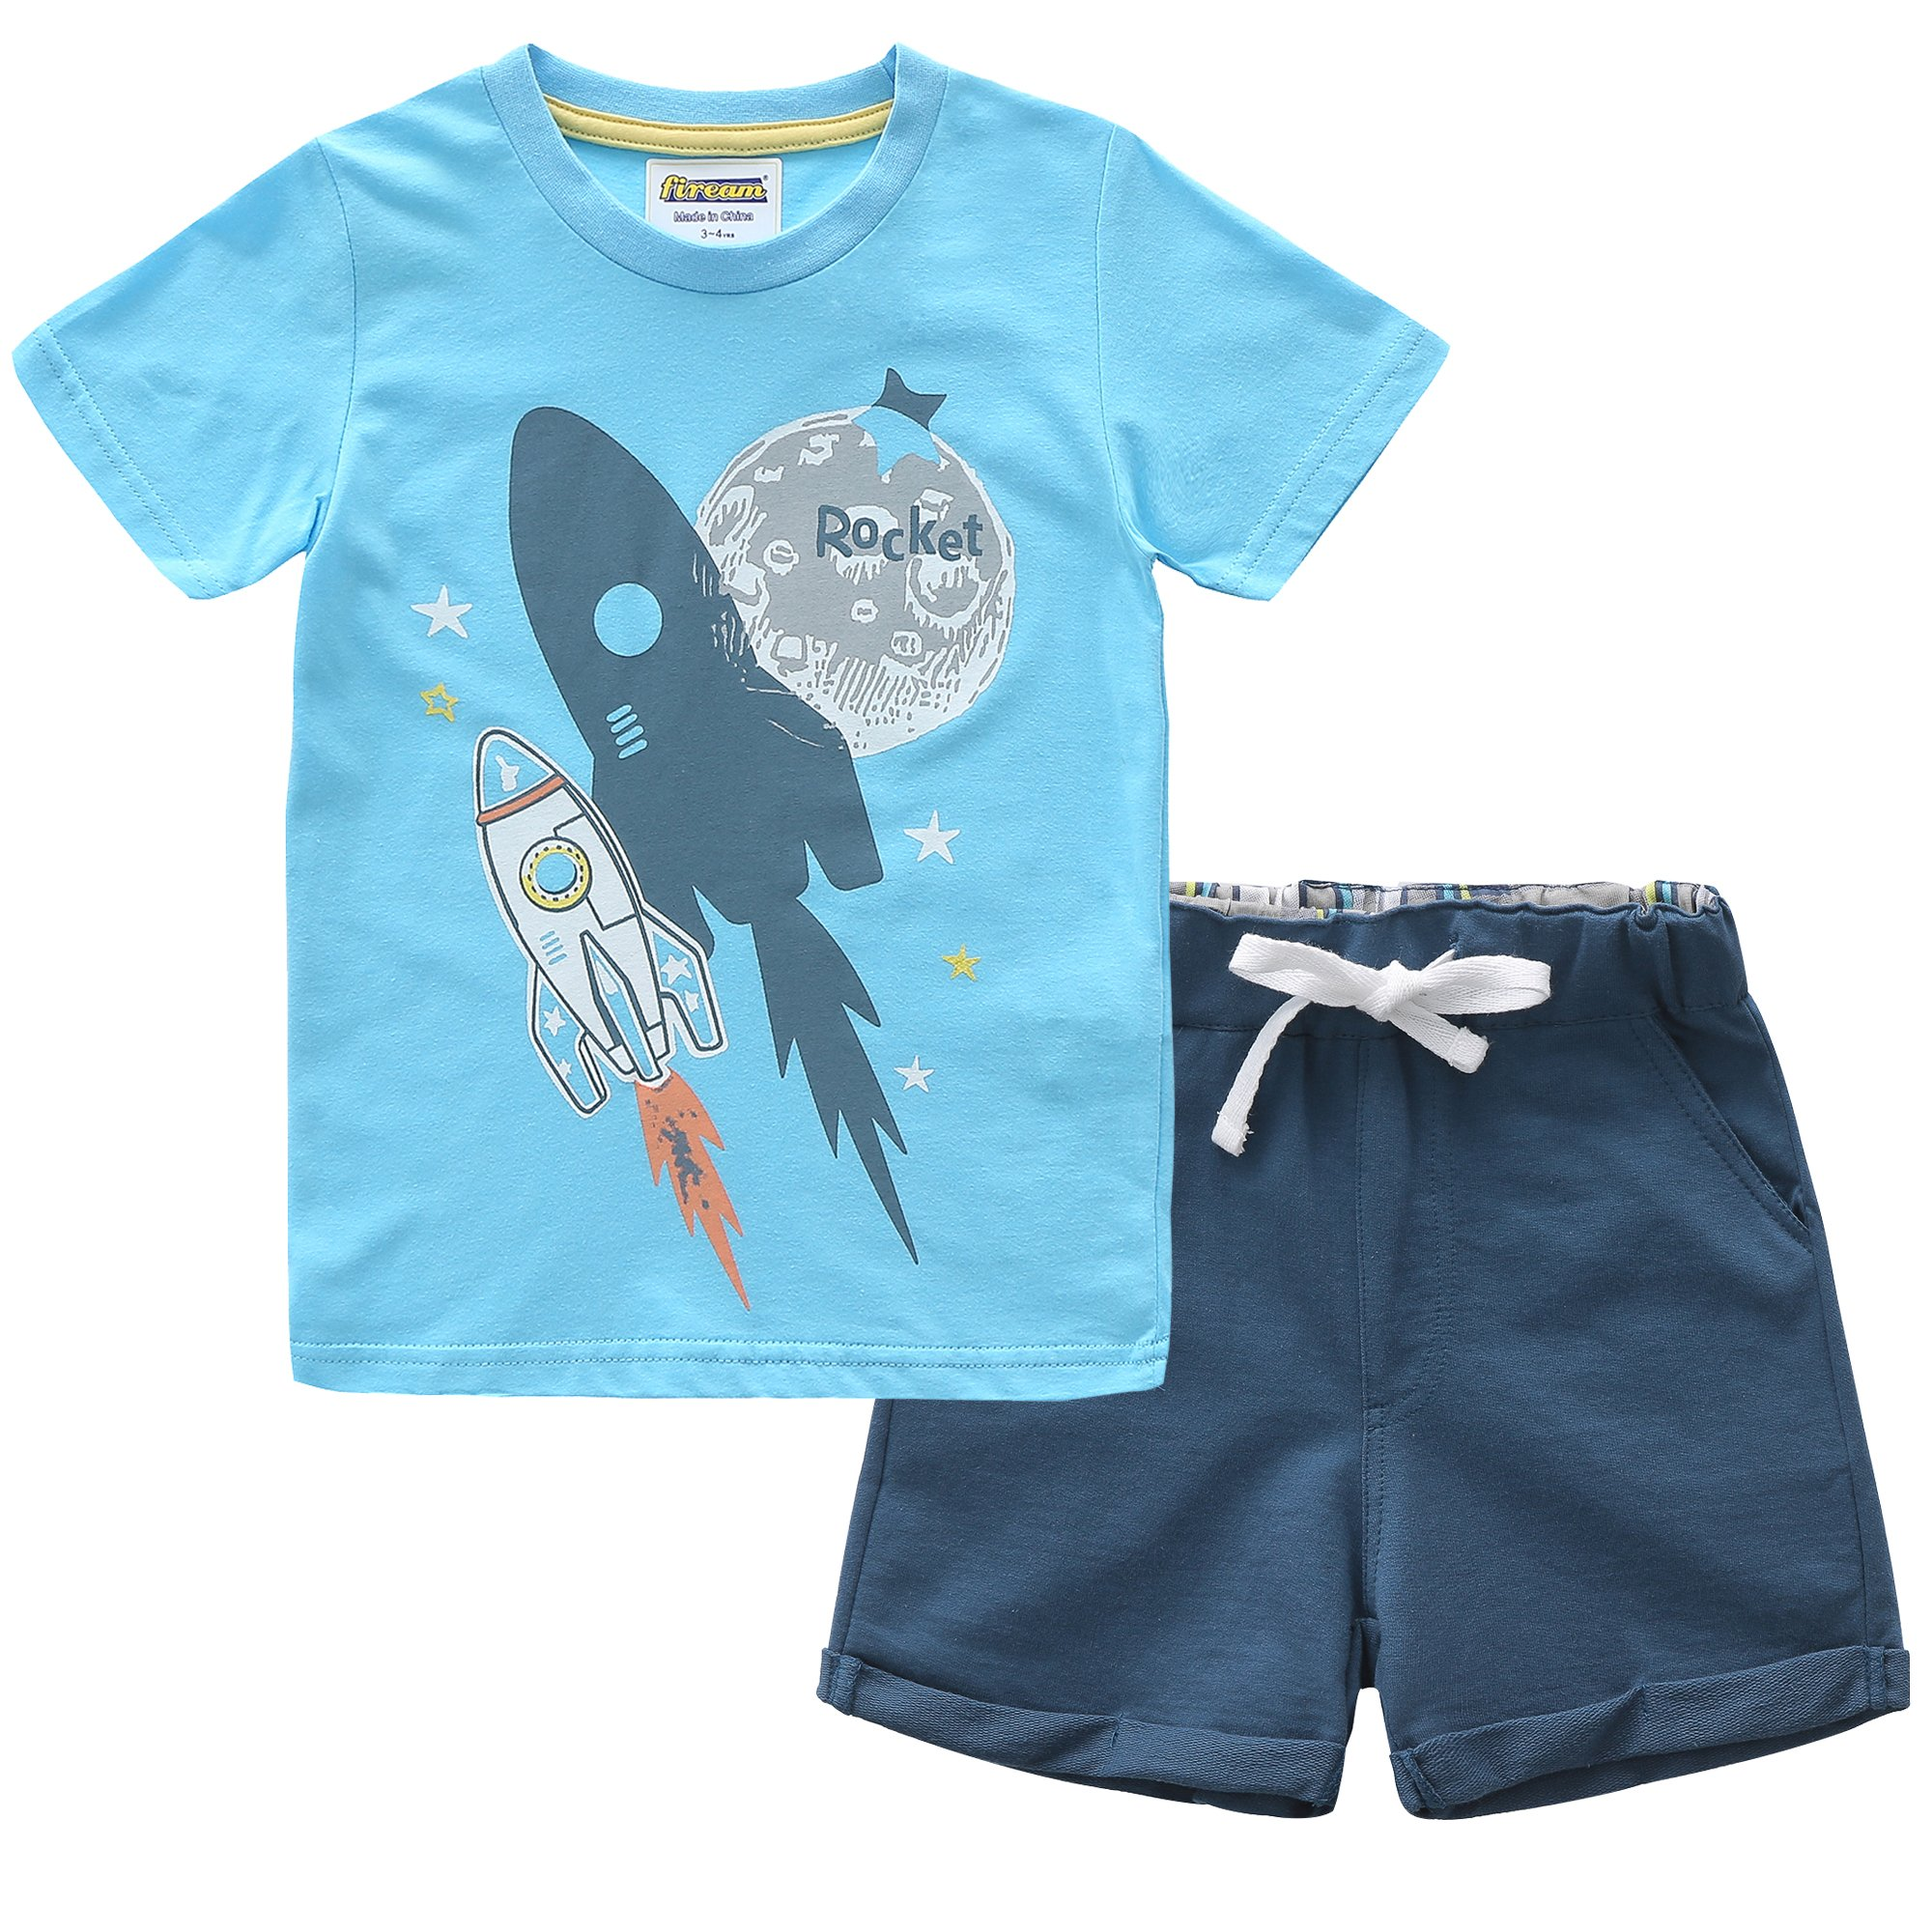 Fiream Boys Cotton Summer Sets Shortsleeve Space Pattern t-Shirts and Shorts 2 pcs Clothing Sets(18022,2T/2-3YRS)